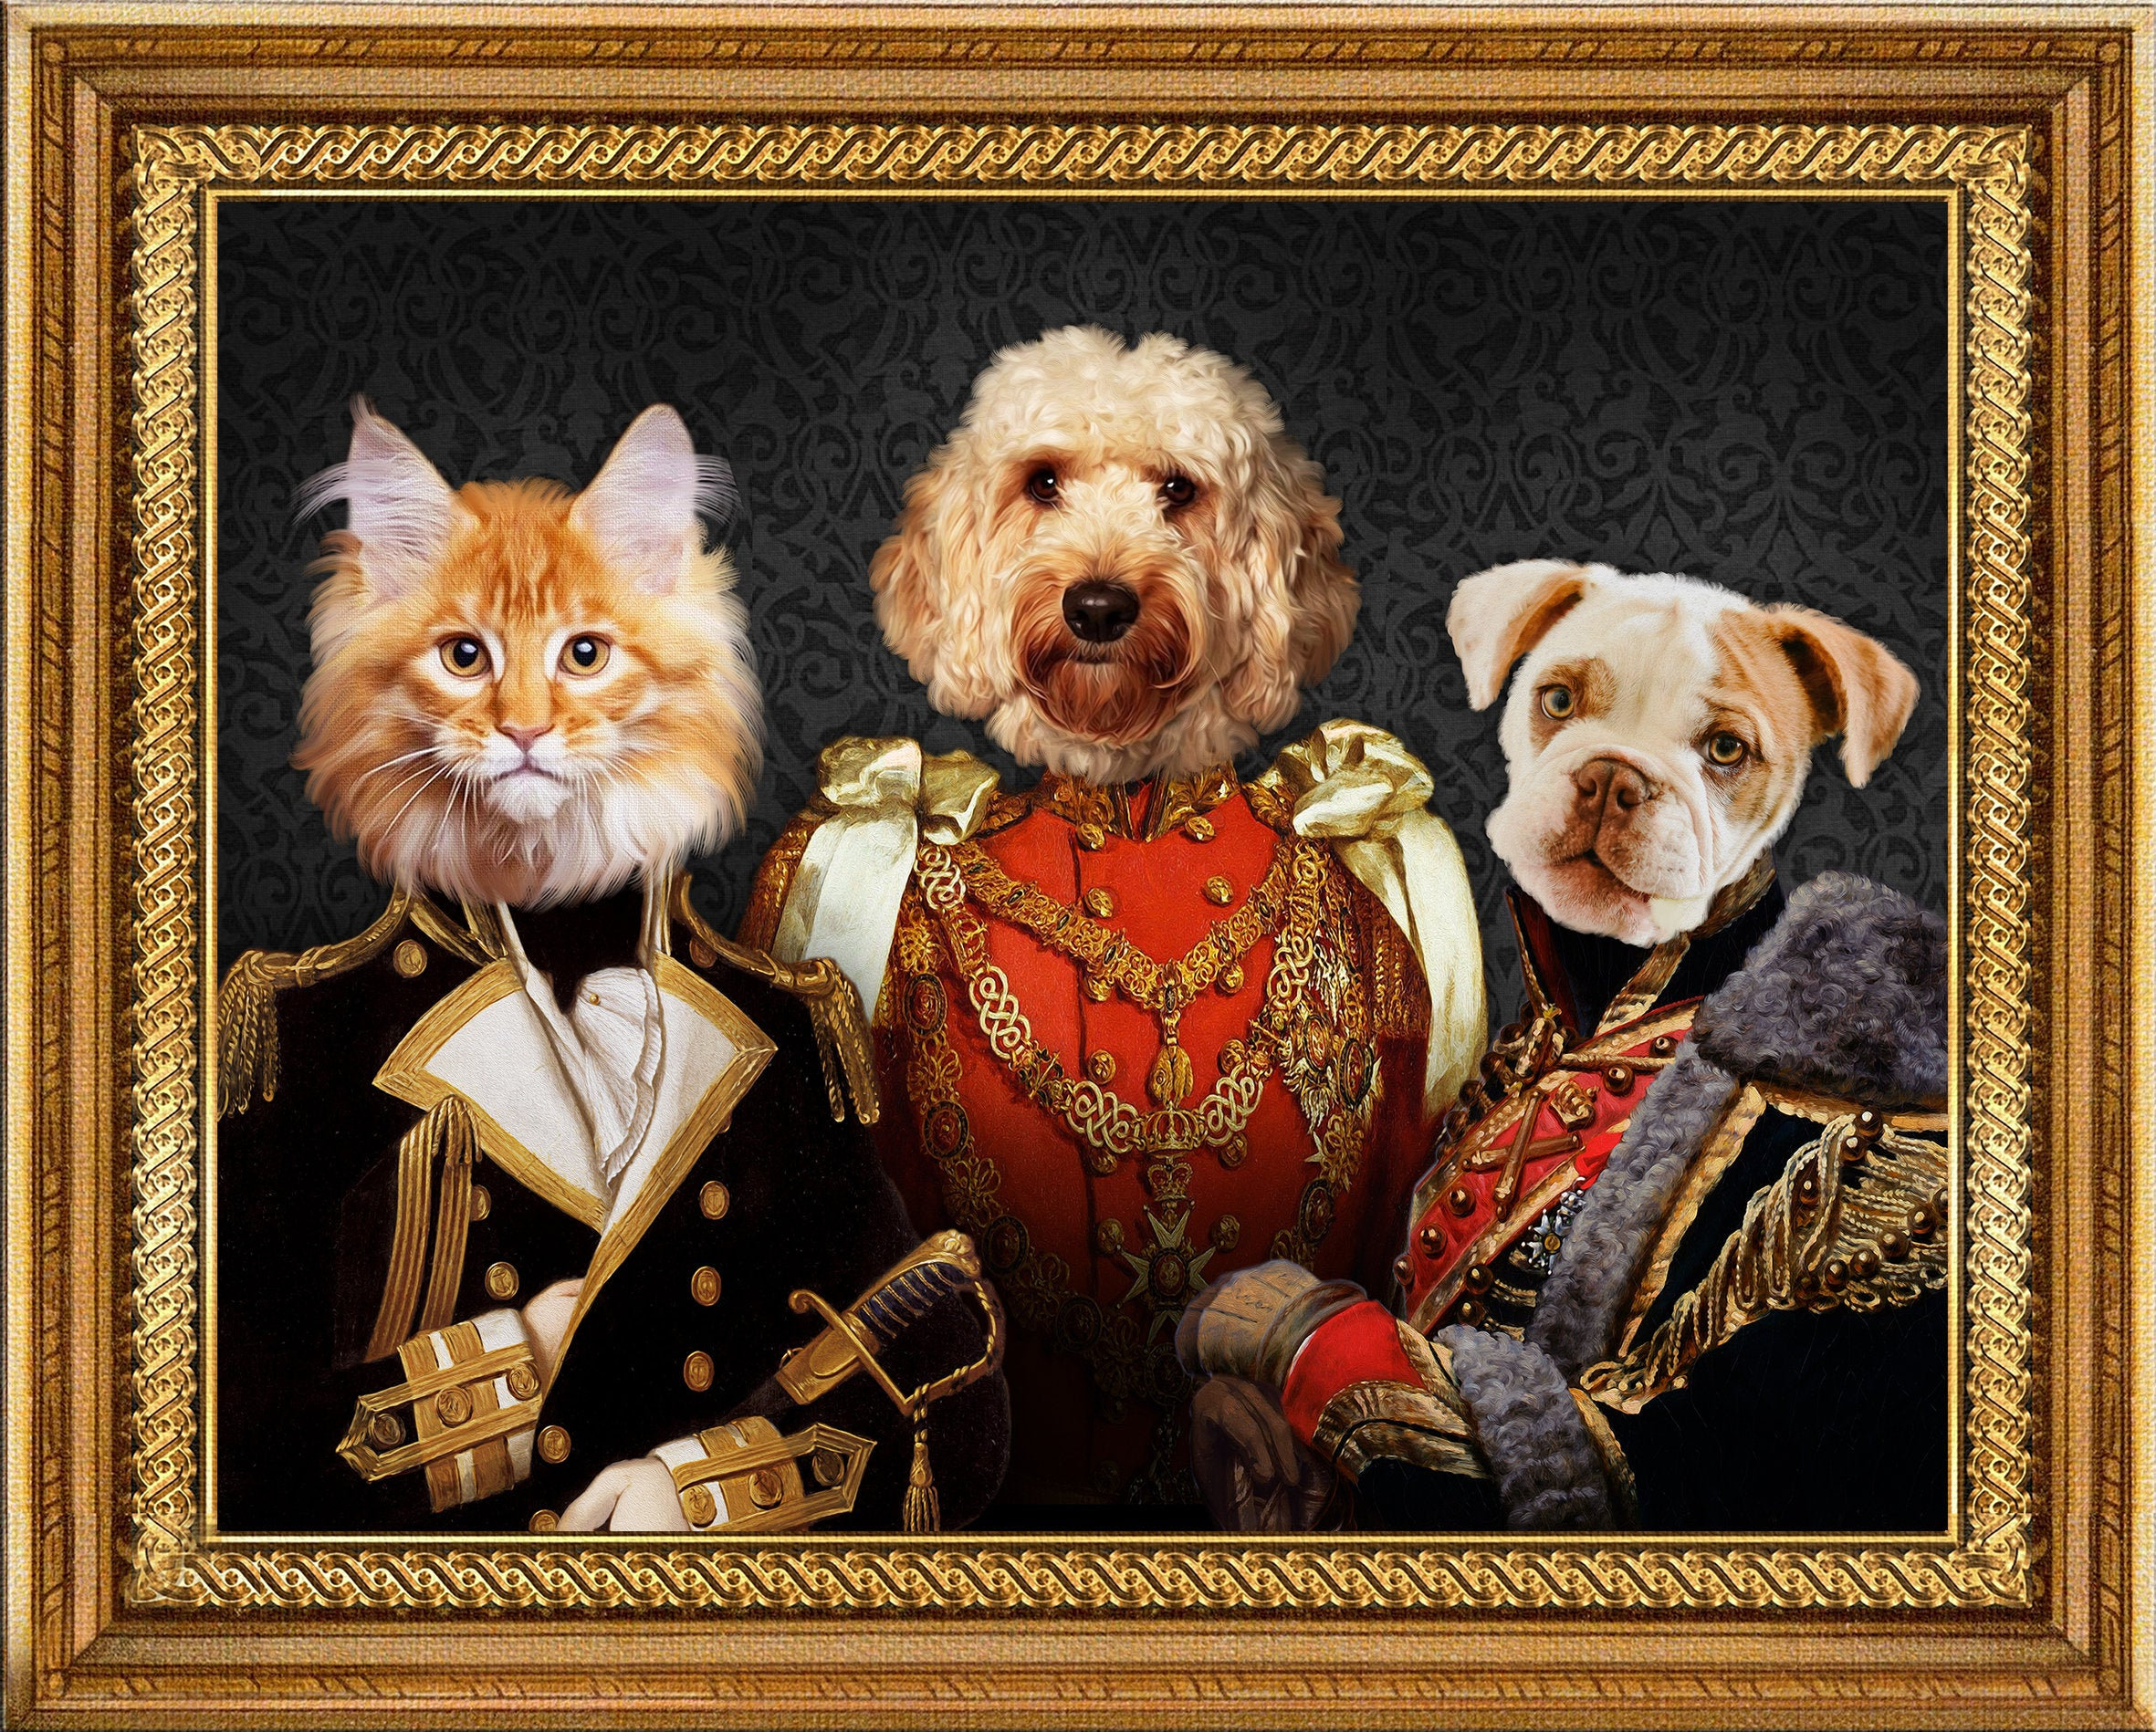 Miicreative- The Perfect Partner To Be The Pet Portrait Artist